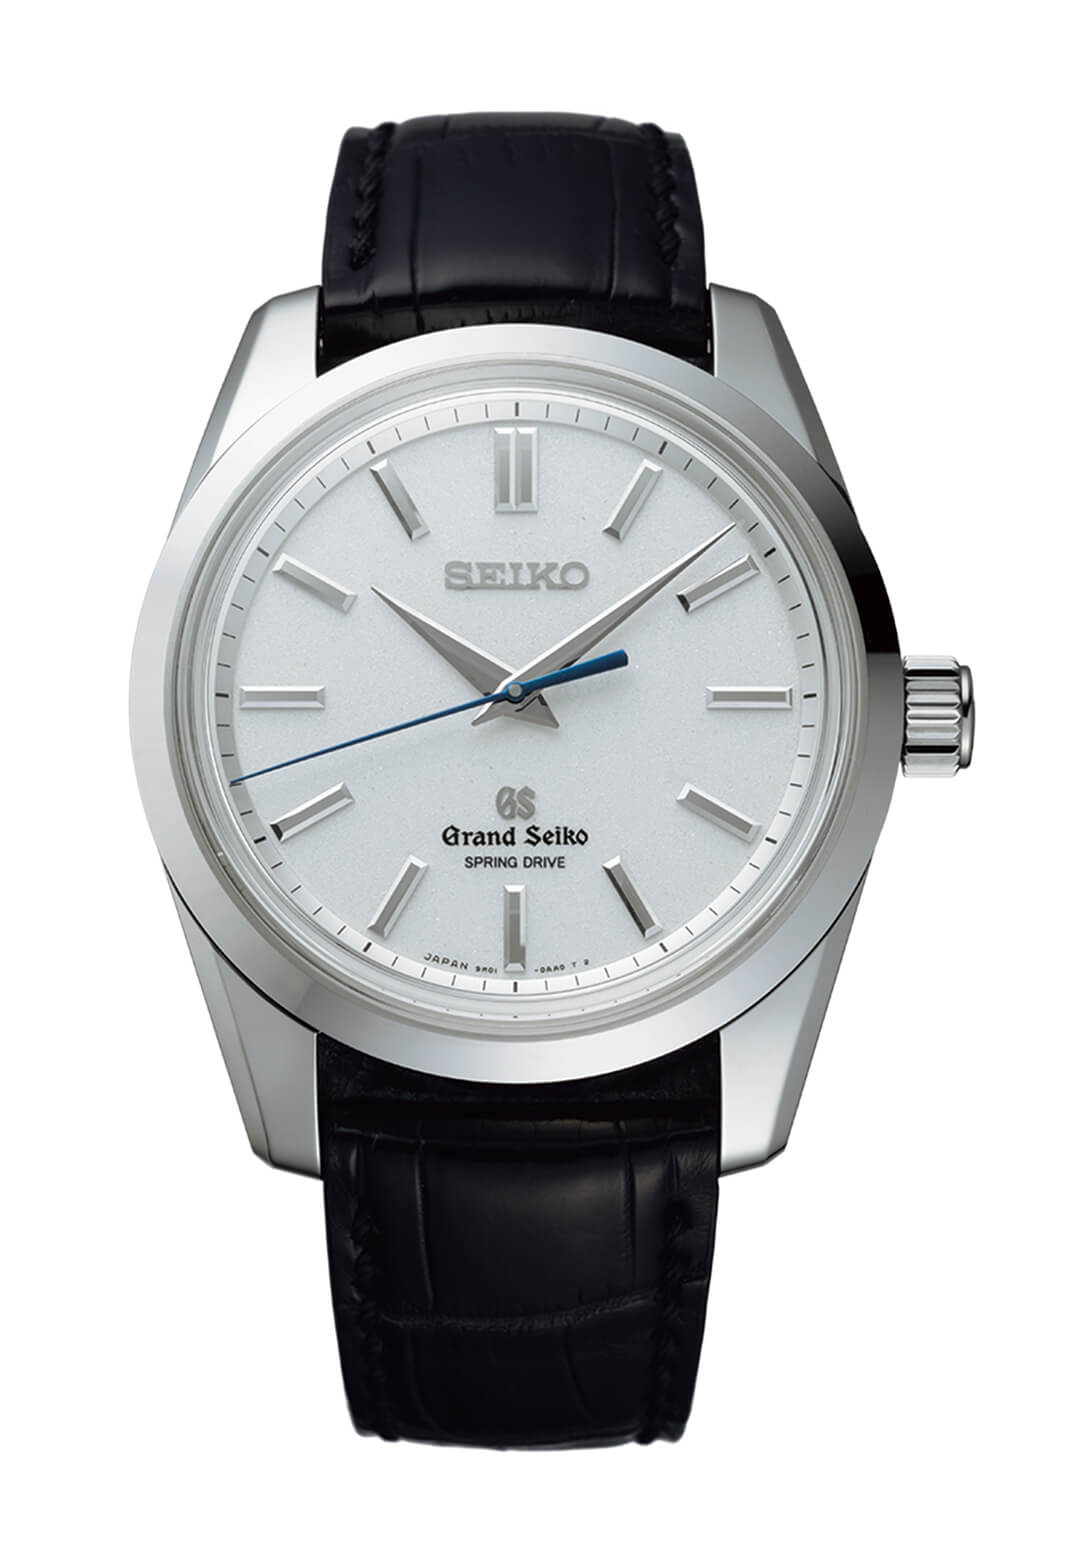 Grand_Seiko_Spring_Drive_8_day_Power_Reserve_SBGD001_case - ESCAPEMENT magazine - watch blog by Angus Davies